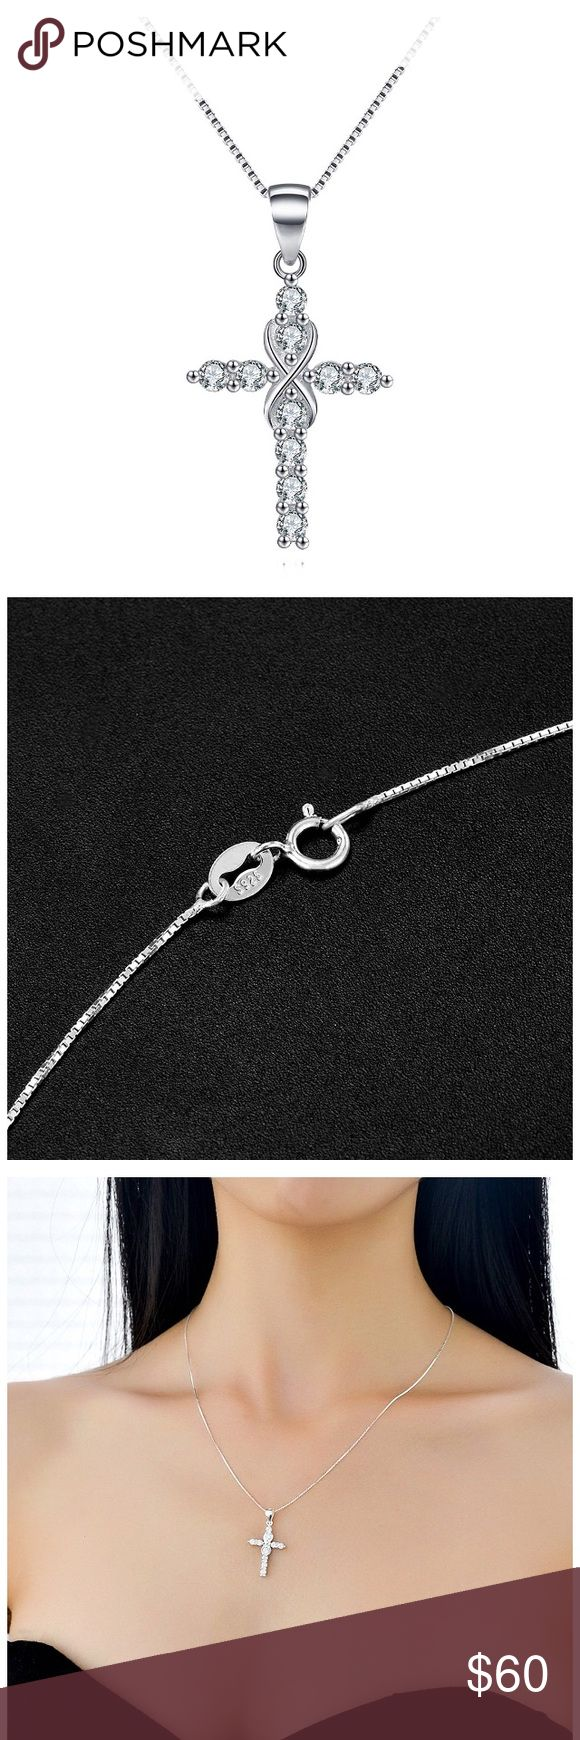 Infinity Cross Diamond Necklace The Infinity Cross Necklace size: Pendant size: Chain length: 45cm. The Infinity Cross Necklace Cubic Zirconia Diamond Religious Jewelry Pendant Charm Necklace Metal type: 925 sterling silver. Metal stamp: 925. The Infinity Cross Necklace Cubic Zirconia Diamond Religious Jewelry Pendant Charm Necklace Material: Cubic Zirconia CZ Diamond. Jewelry Necklaces